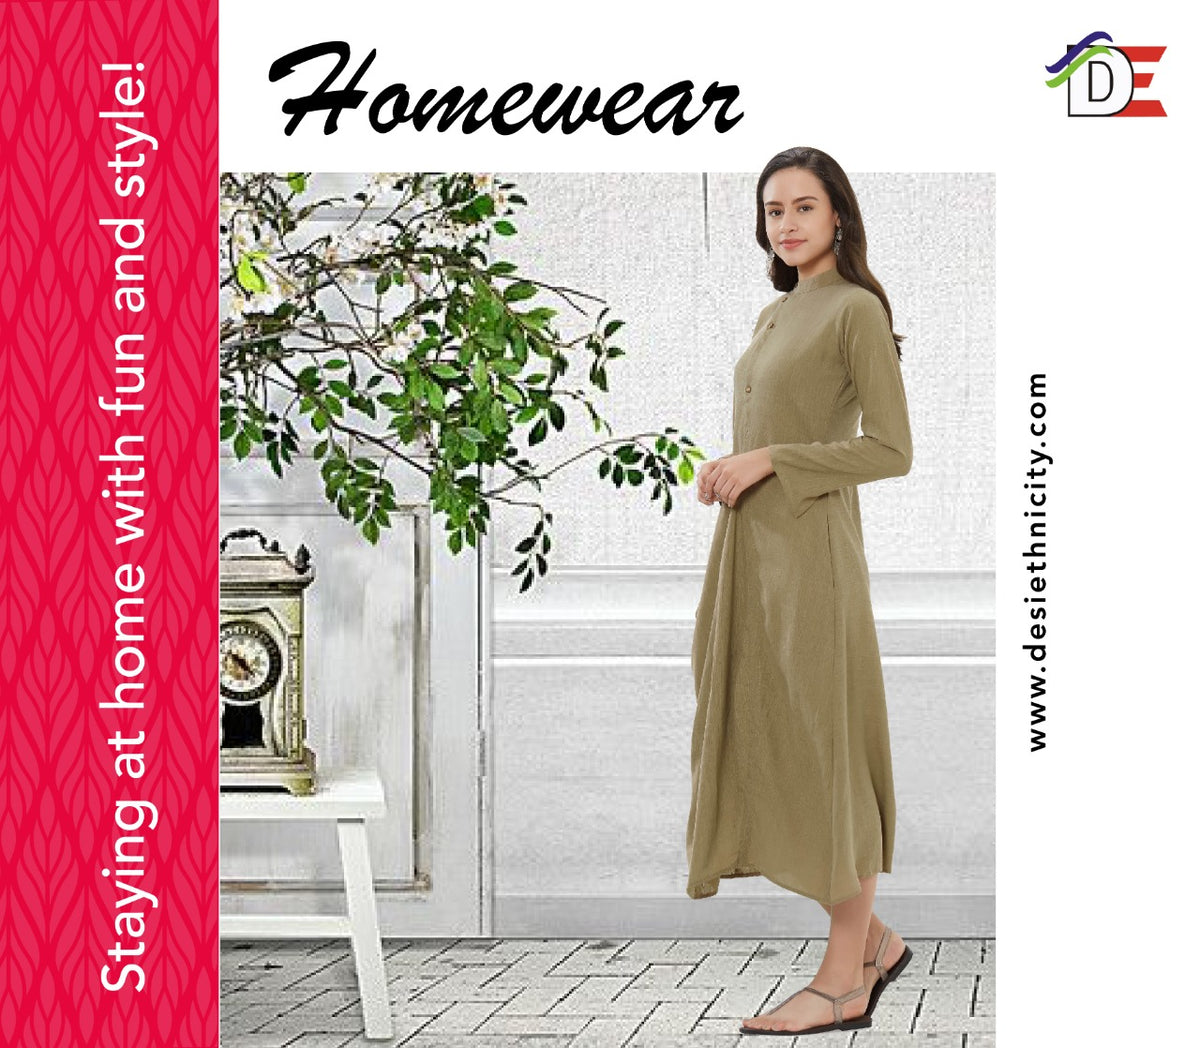 Homewear -Staying at home with fun and style!